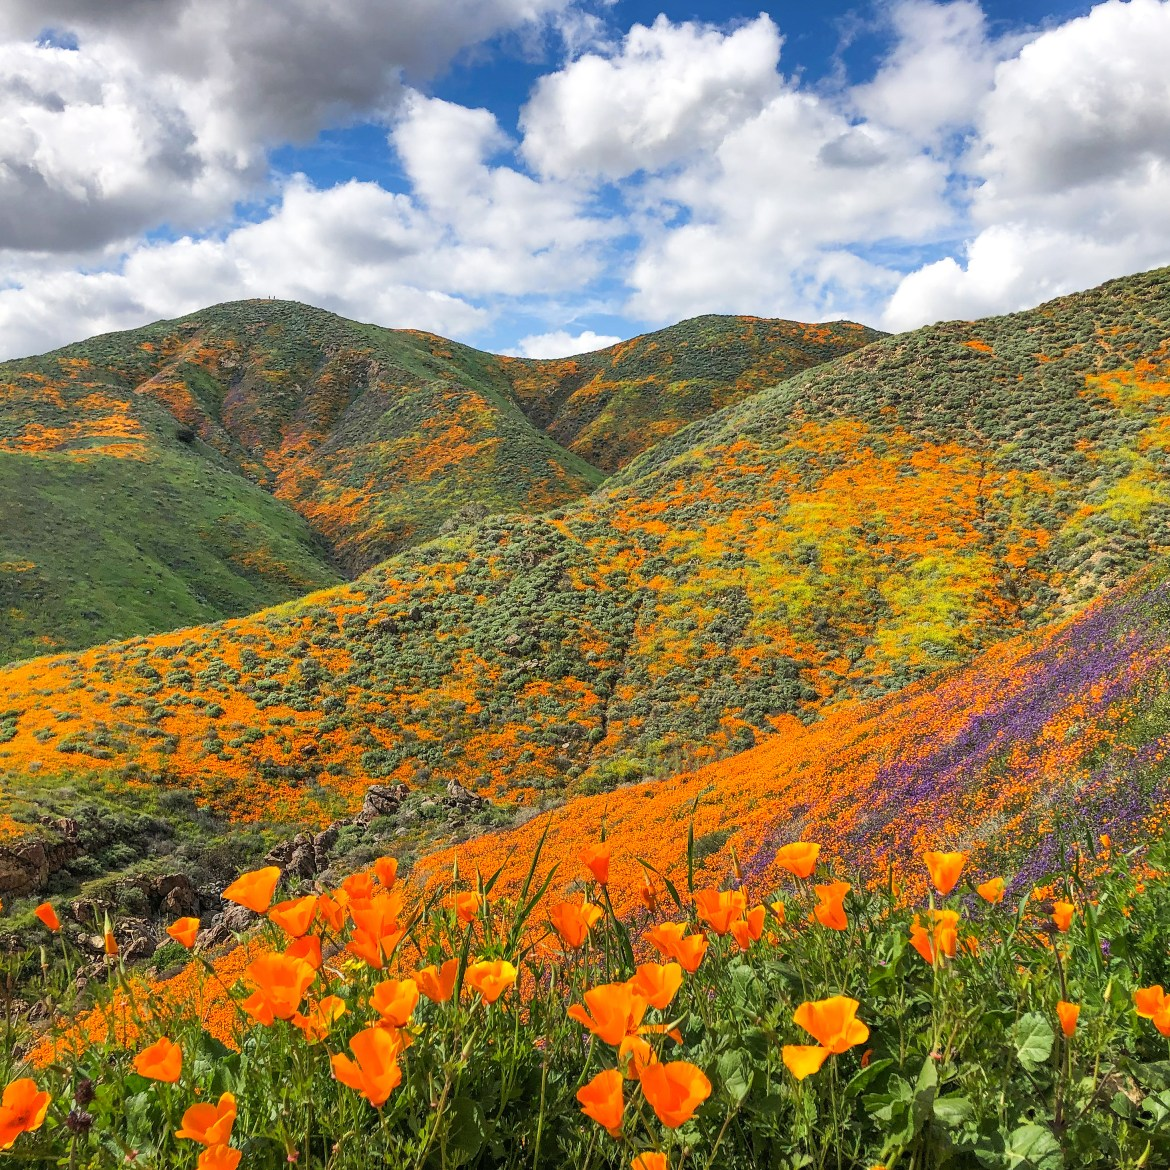 #superbloom2019 #californiapoppies